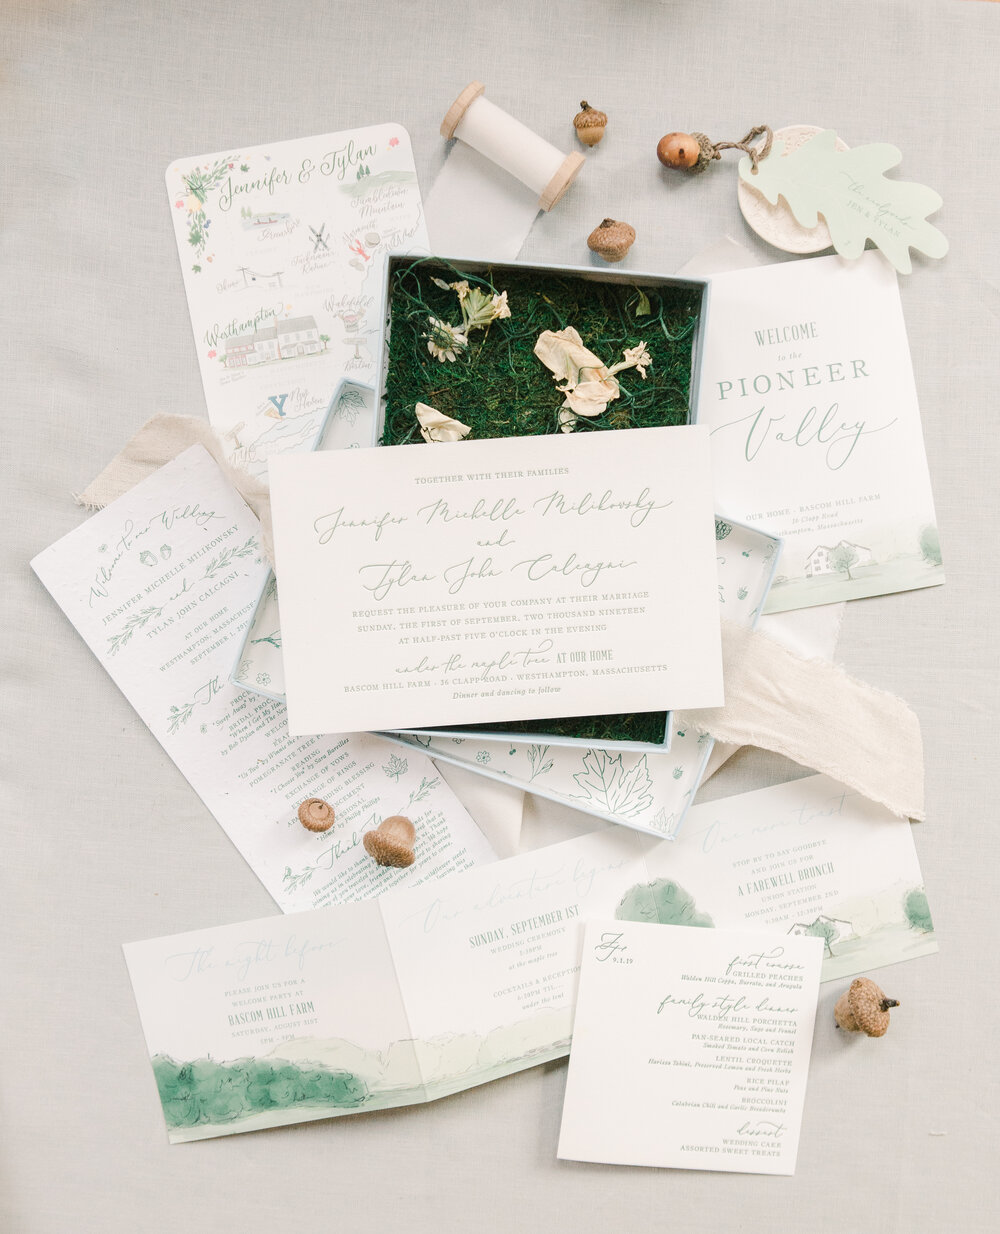 Boxed wedding invitation inspiration